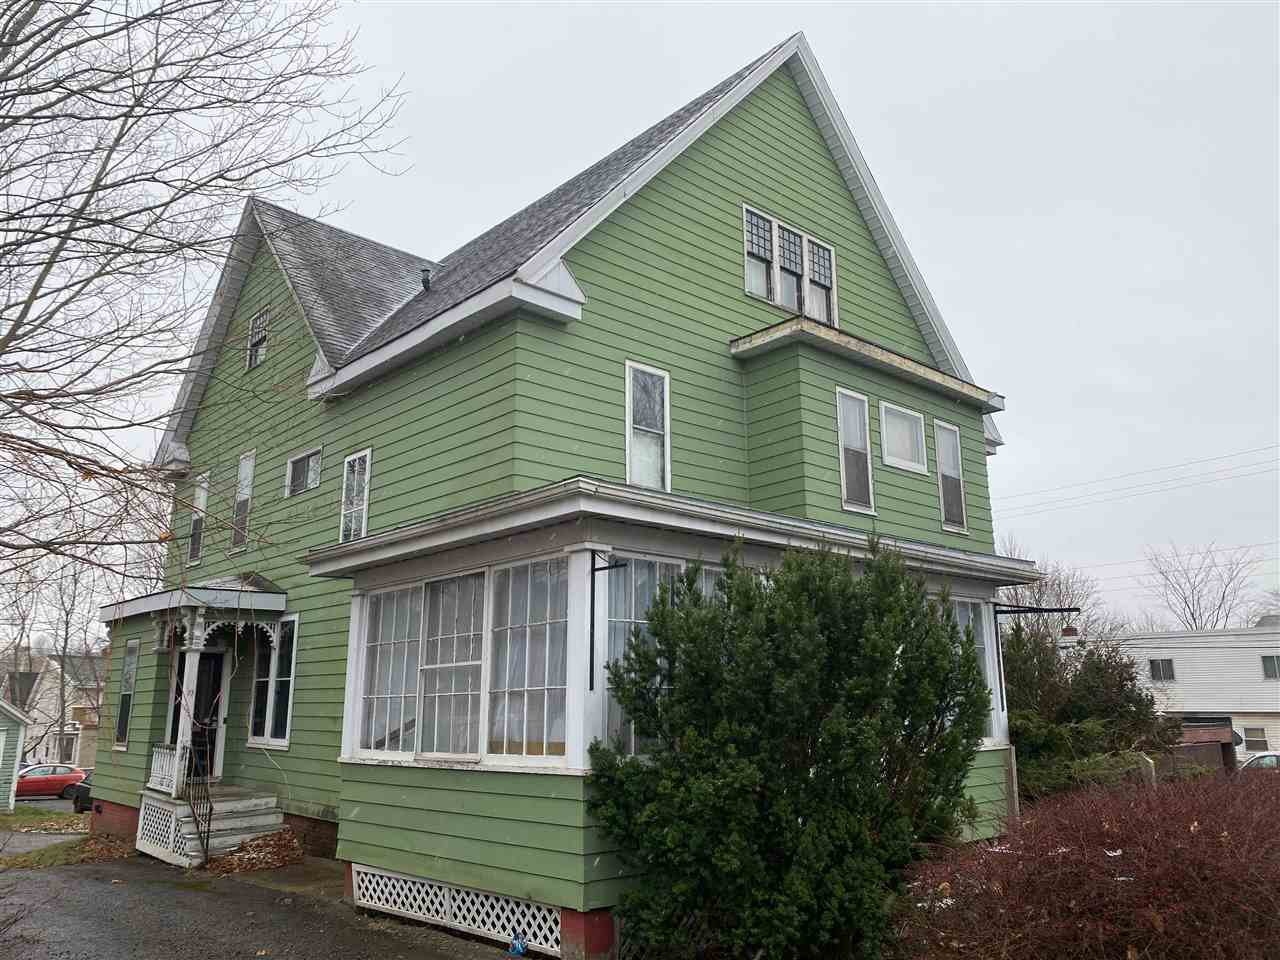 Main Photo: 83 & 85 Gray Street in Windsor: 403-Hants County Multi-Family for sale (Annapolis Valley)  : MLS®# 202025382